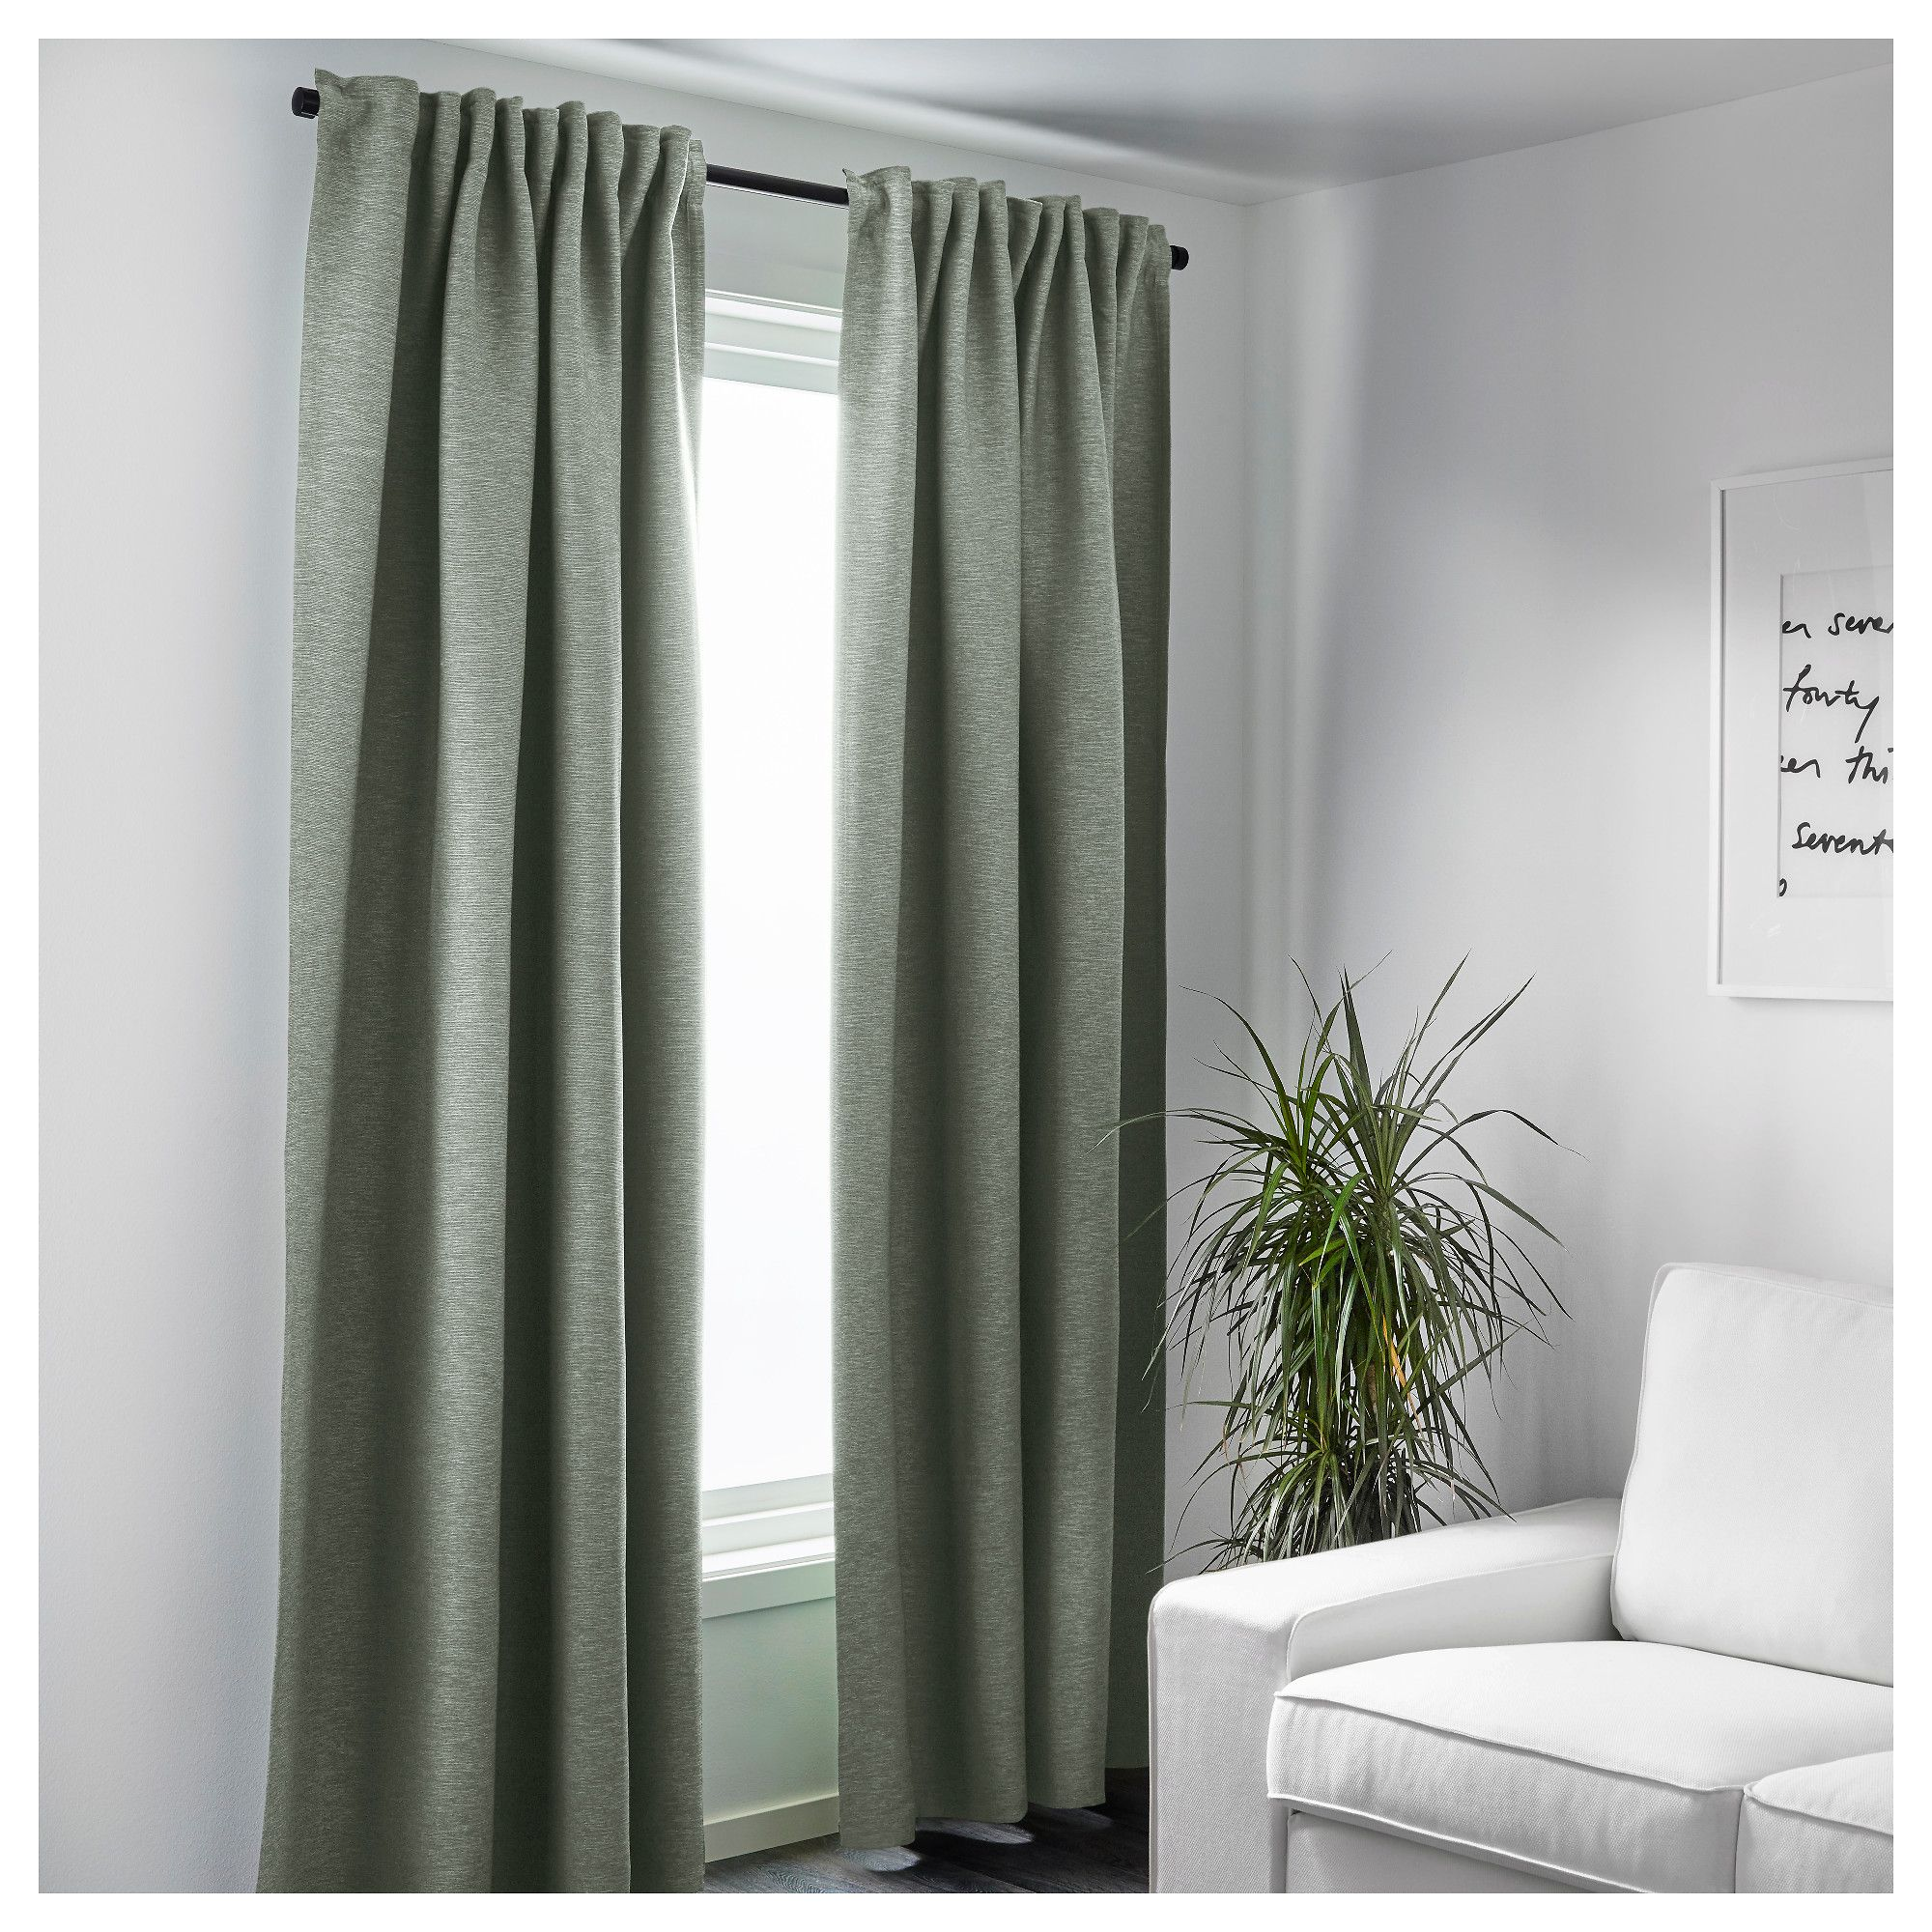 Ikea Jaloezieen Ikea Vilborg Curtains 1 Pair The Curtains Can Be Used On A